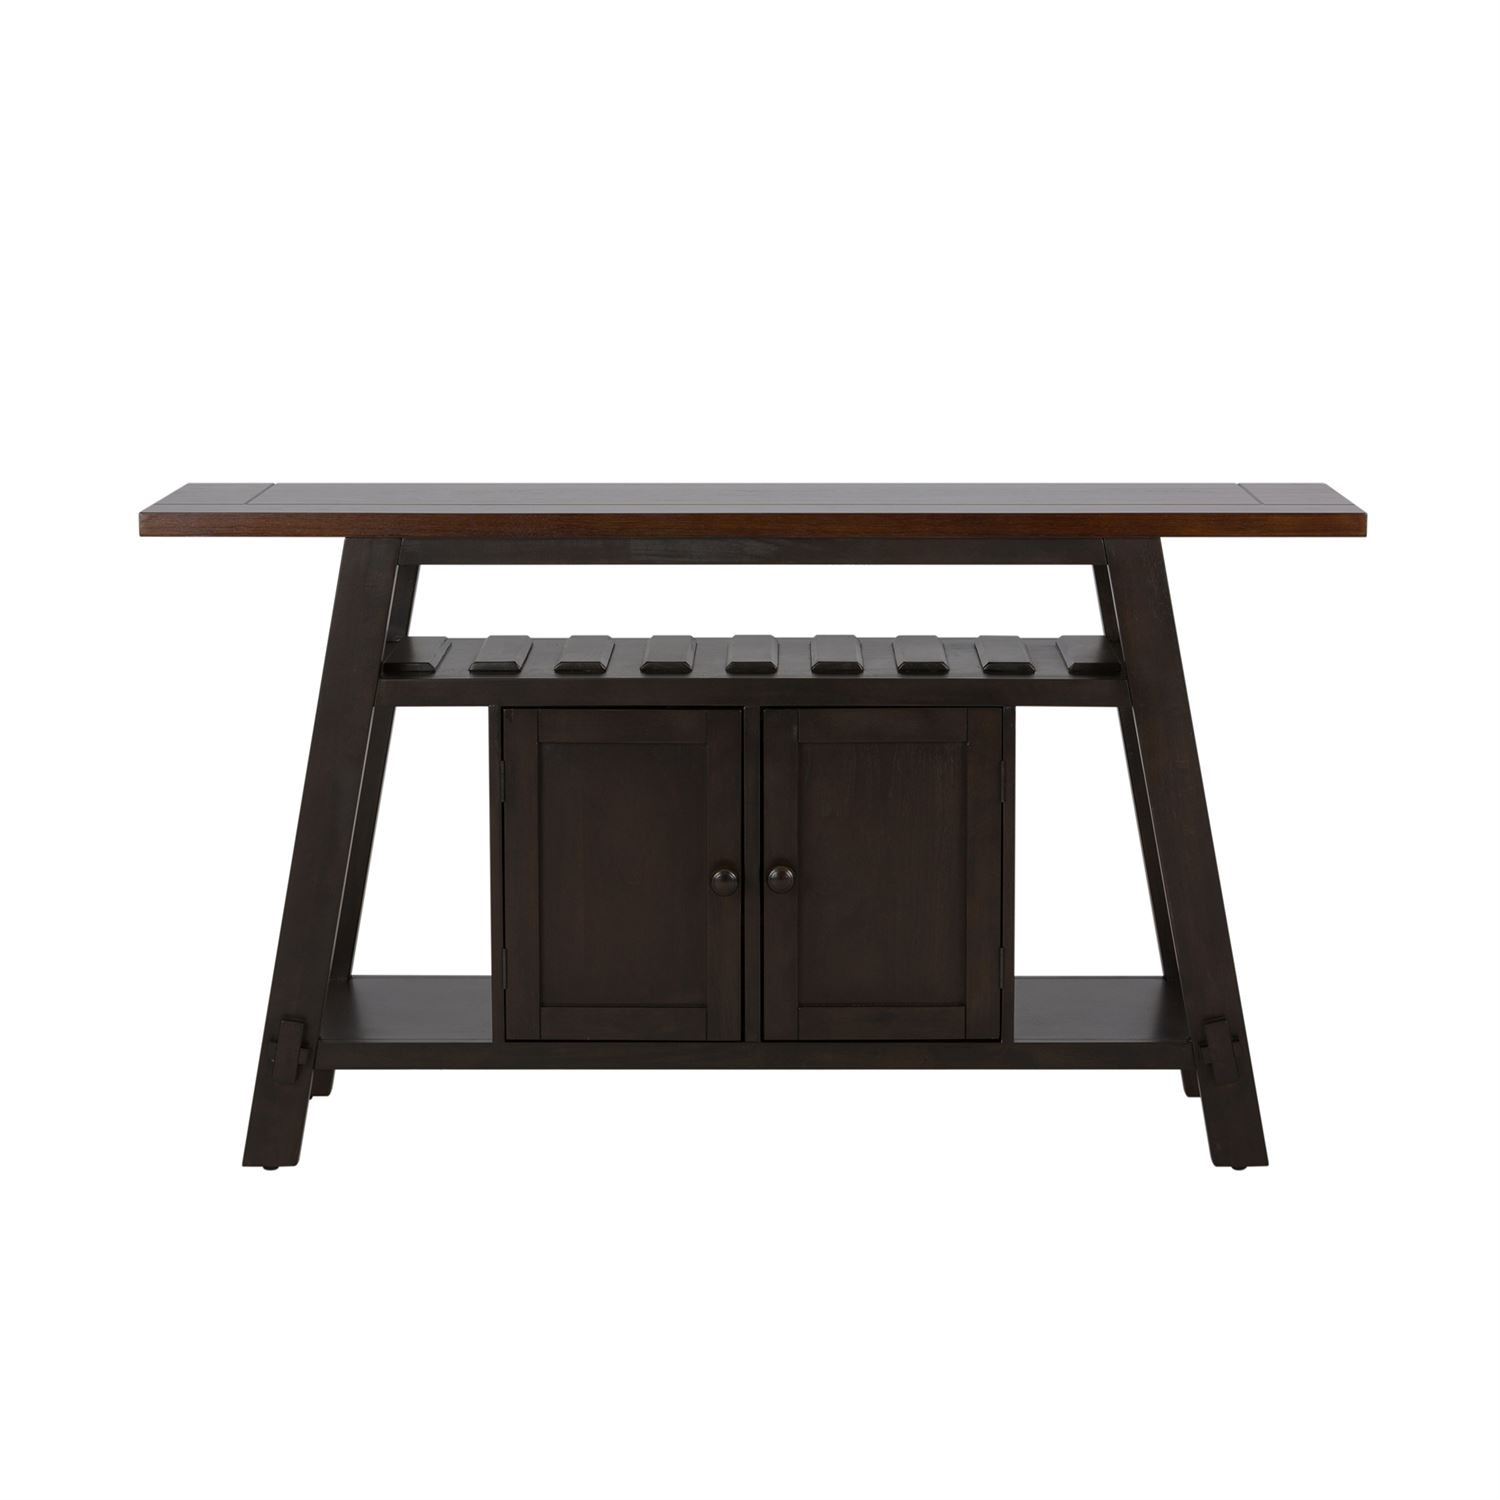 Superieur Liberty Furniture Dining Room Server 116 SR6033   Woodcrafters Furniture    Murray, KY